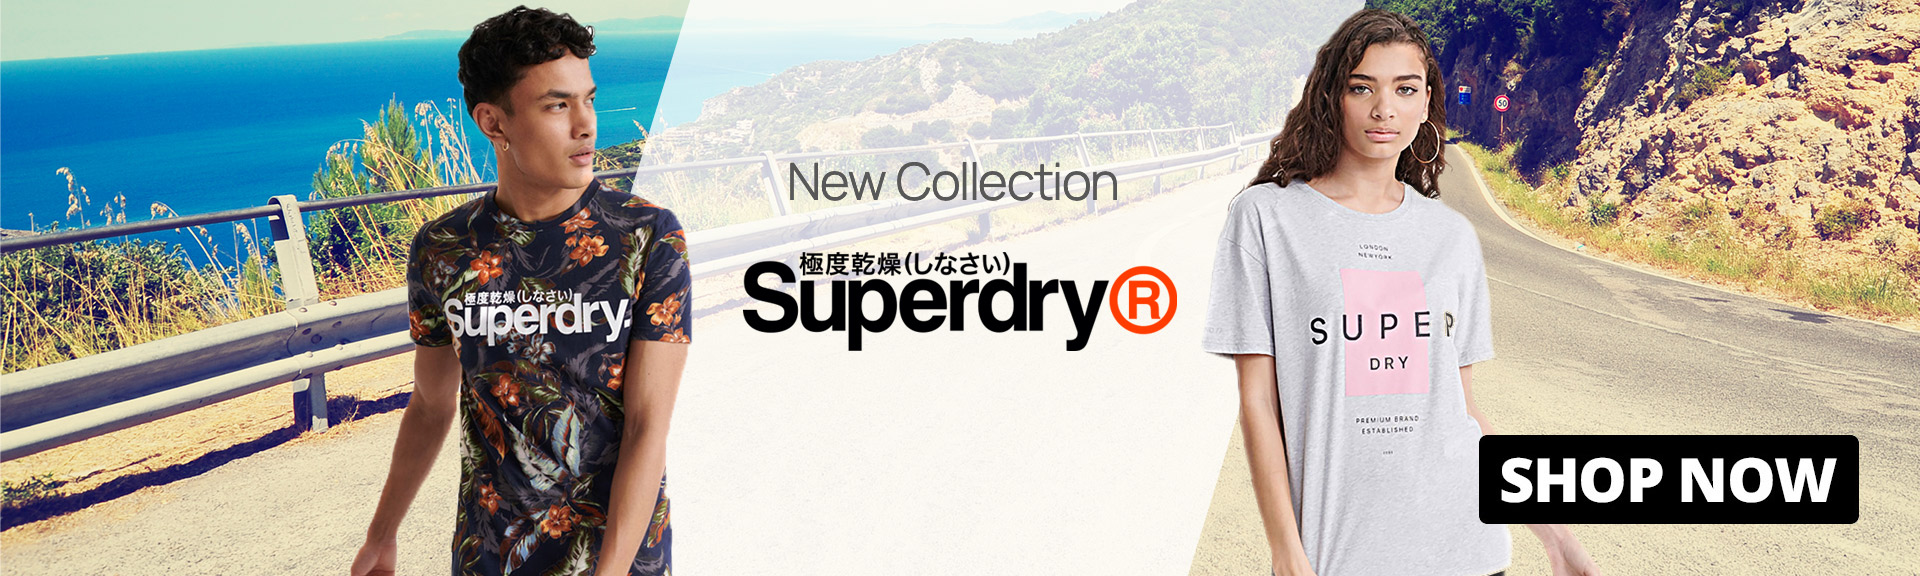 Superdry New Collection